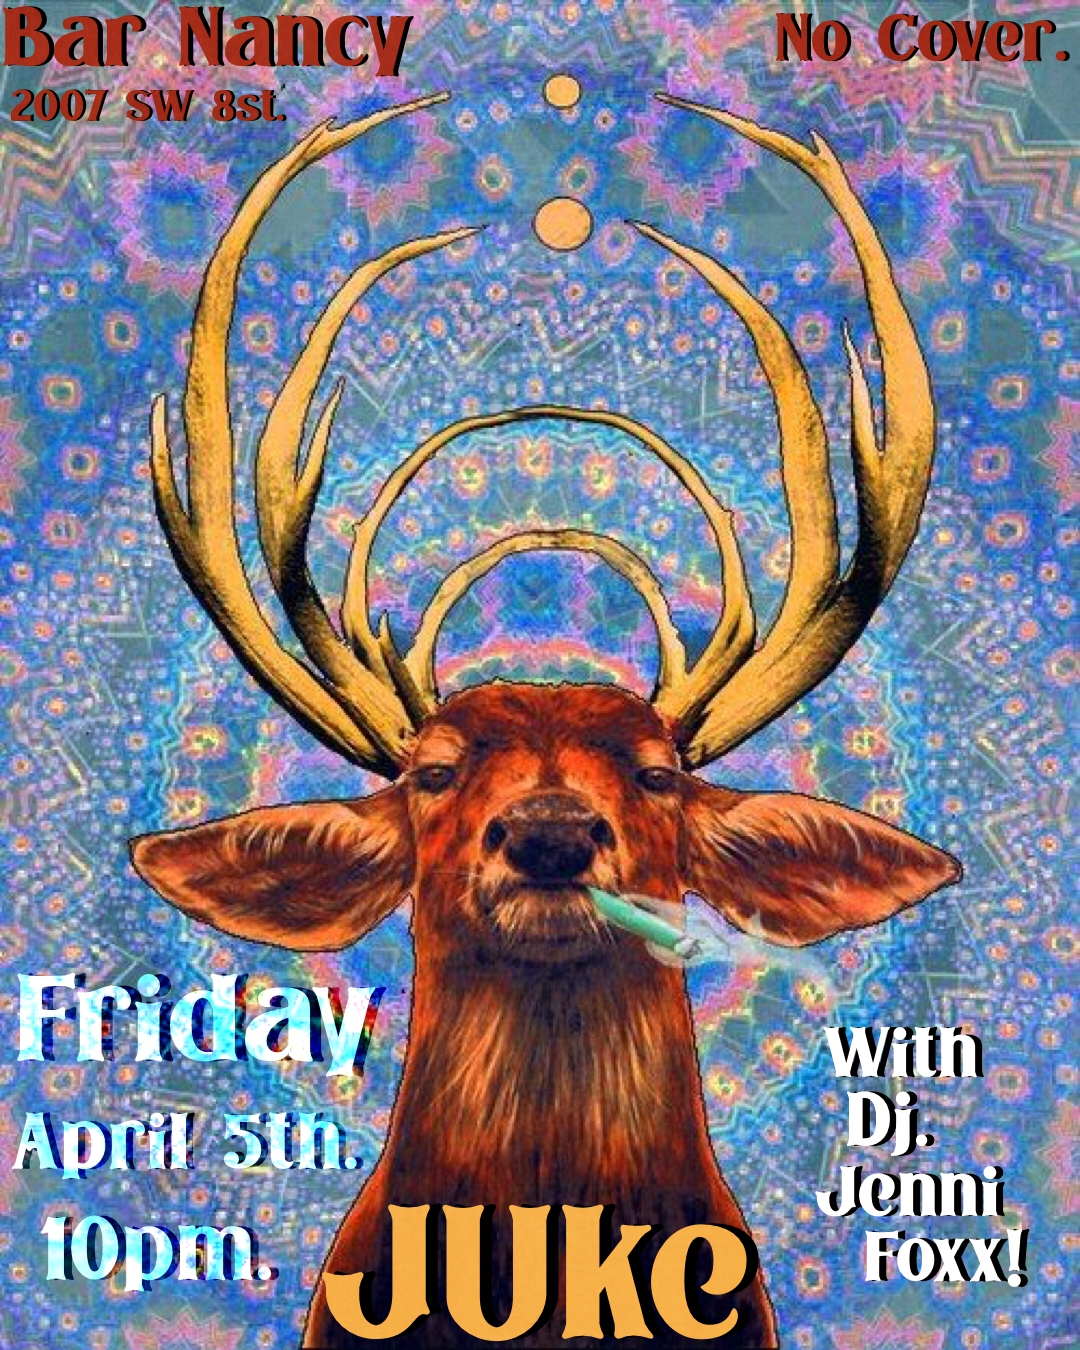 JUKE @ BAR NANCY WITH DJ JENNI FOXX! - FRIDAY APRIL 5TH - 10 PM - NO COVER